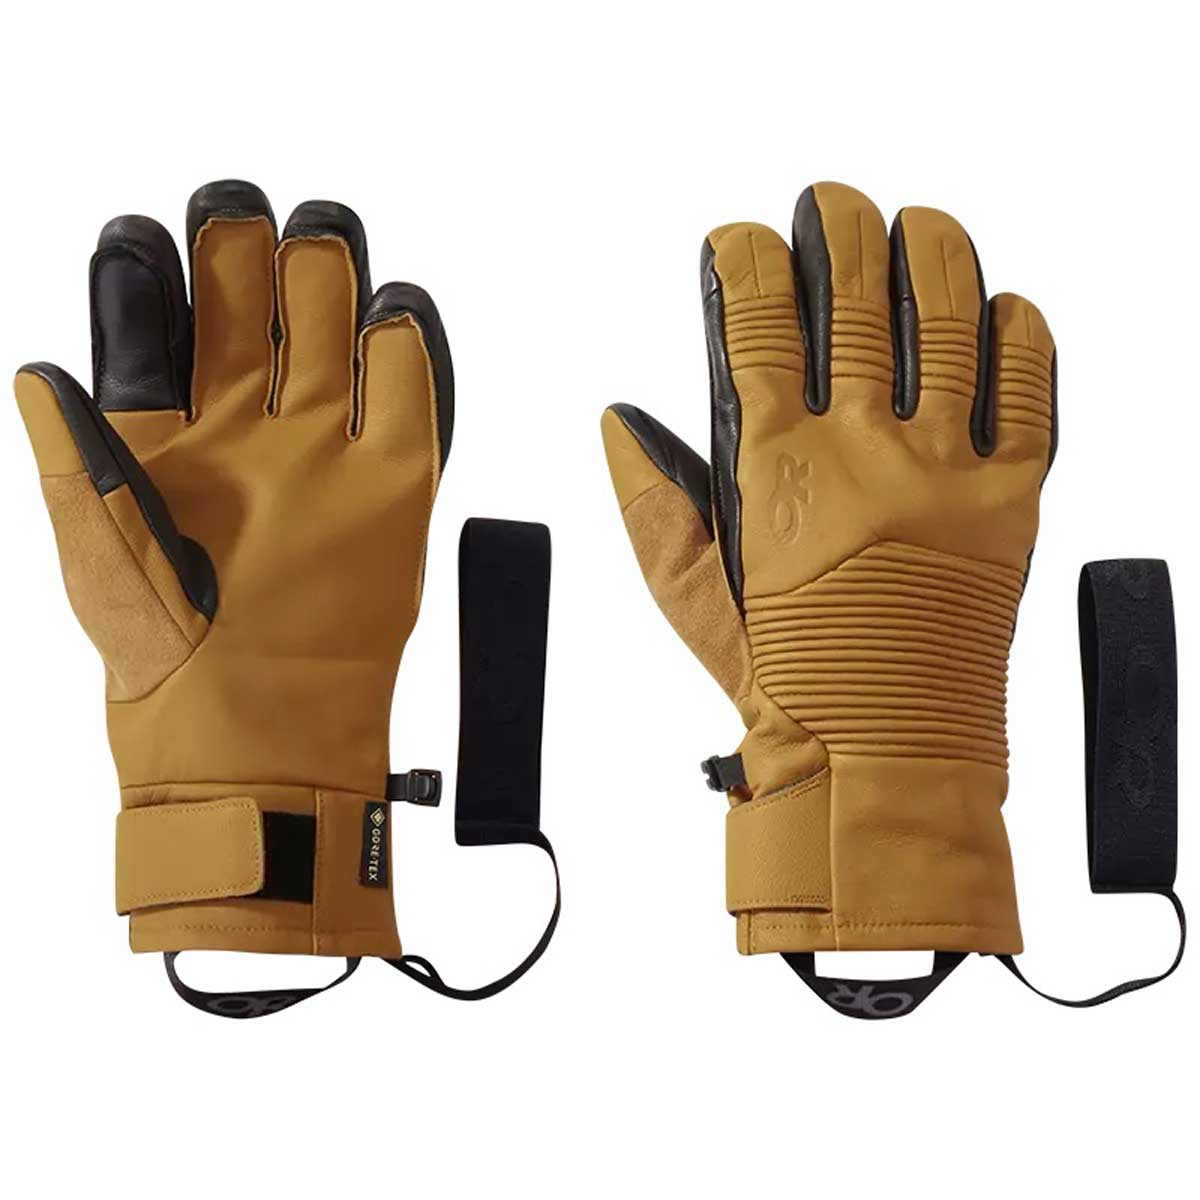 Outdoor Research Men's Point N Chute Sensor Glove in Natural and Black